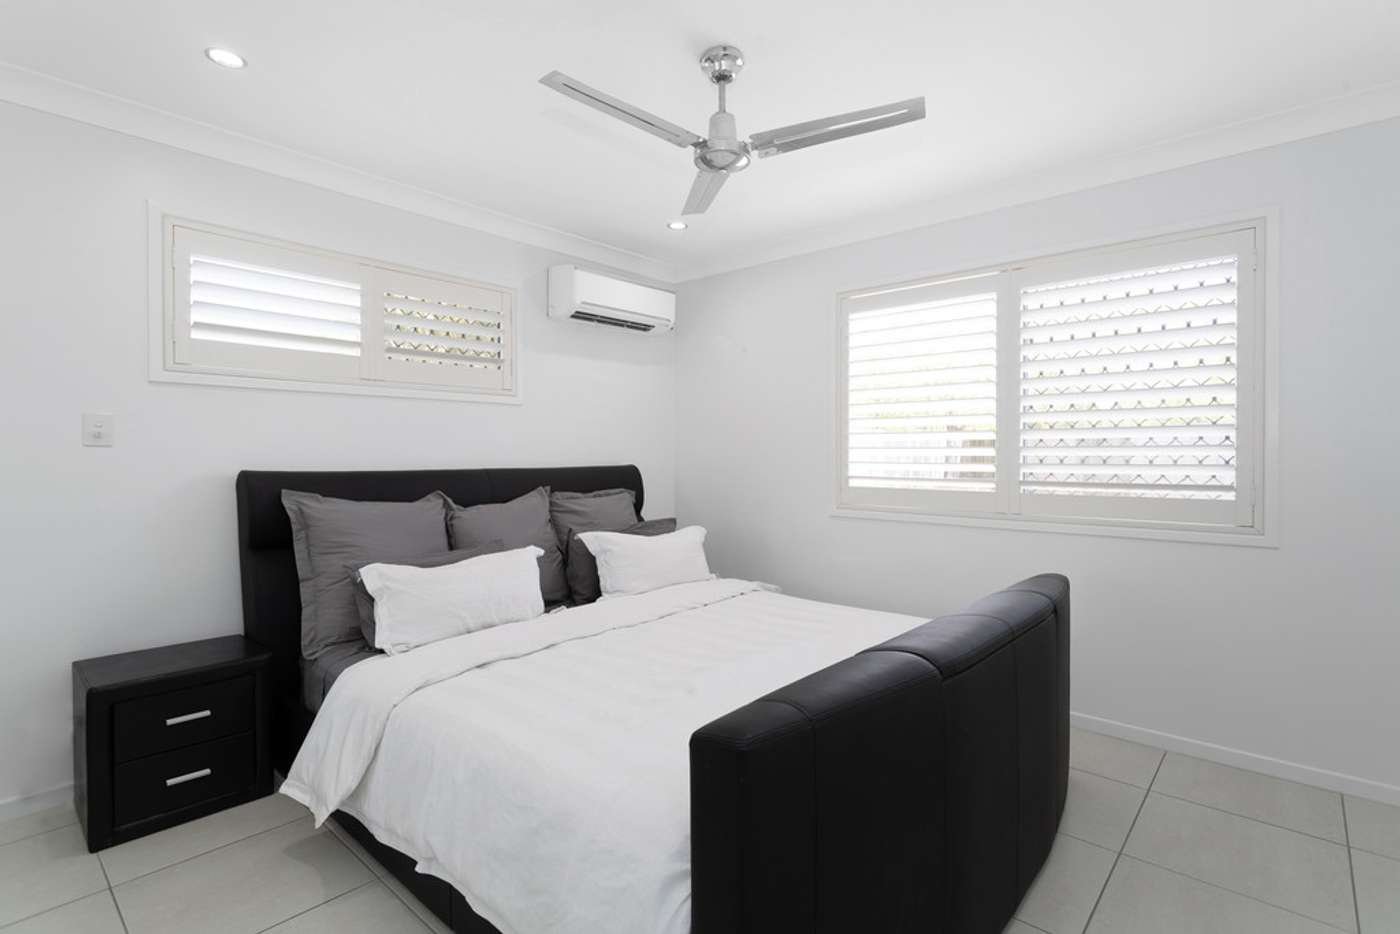 Seventh view of Homely house listing, 2 Mallett Court, Beaconsfield QLD 4740